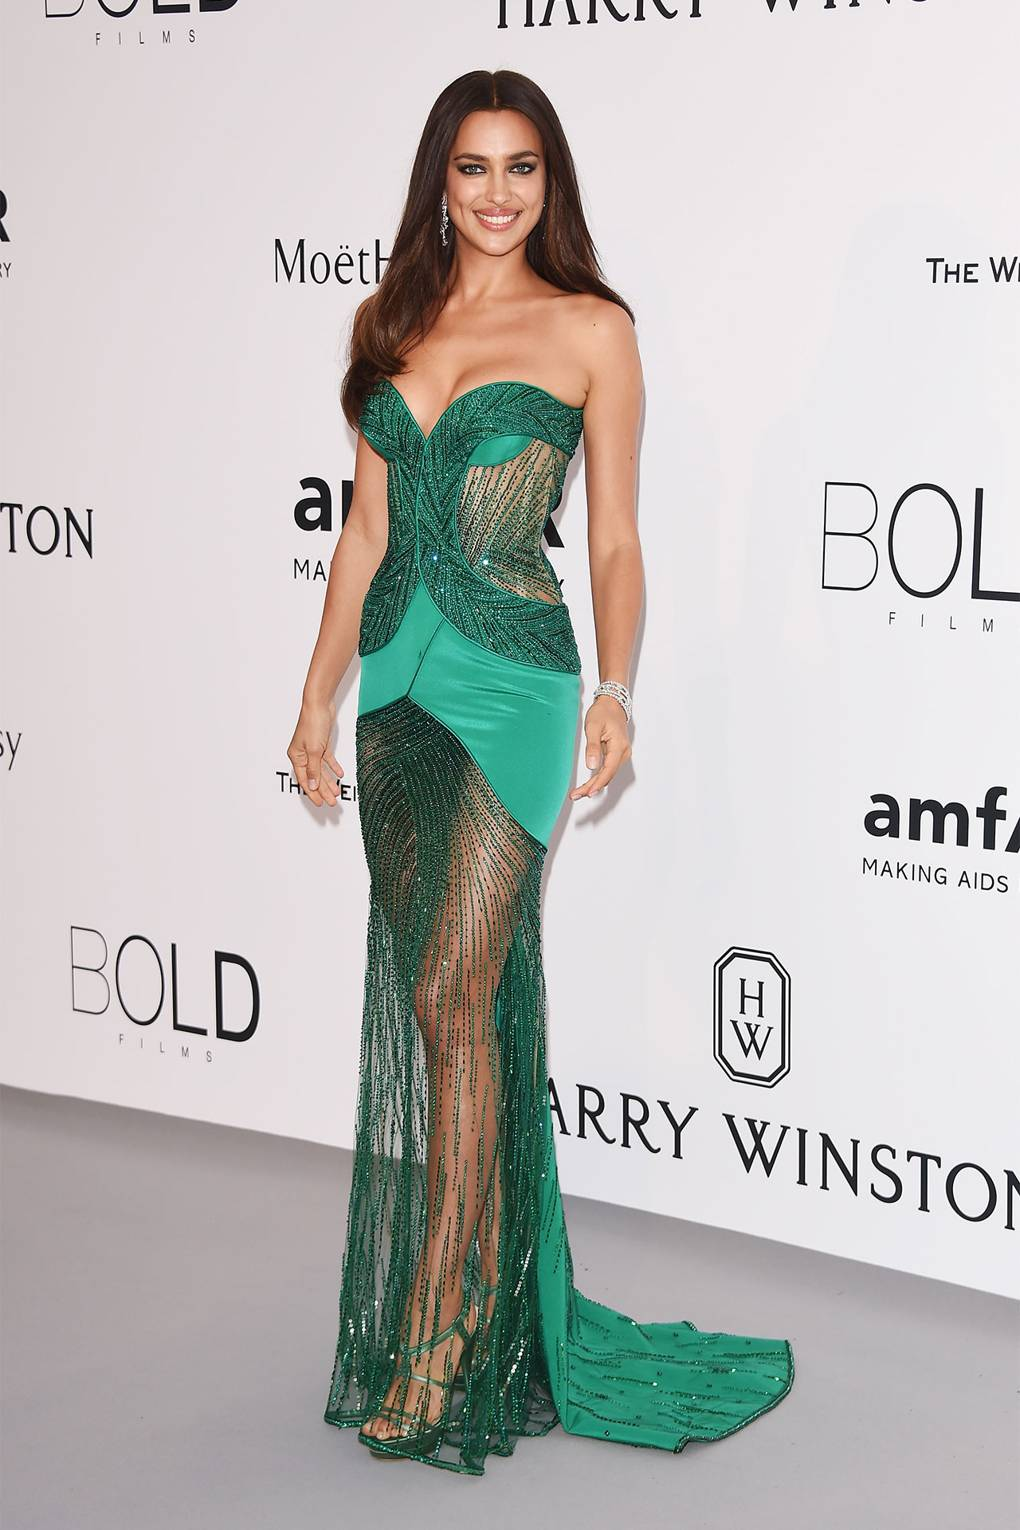 25a3a3b863c69 Irina Shayk s best outfits according to Vogue